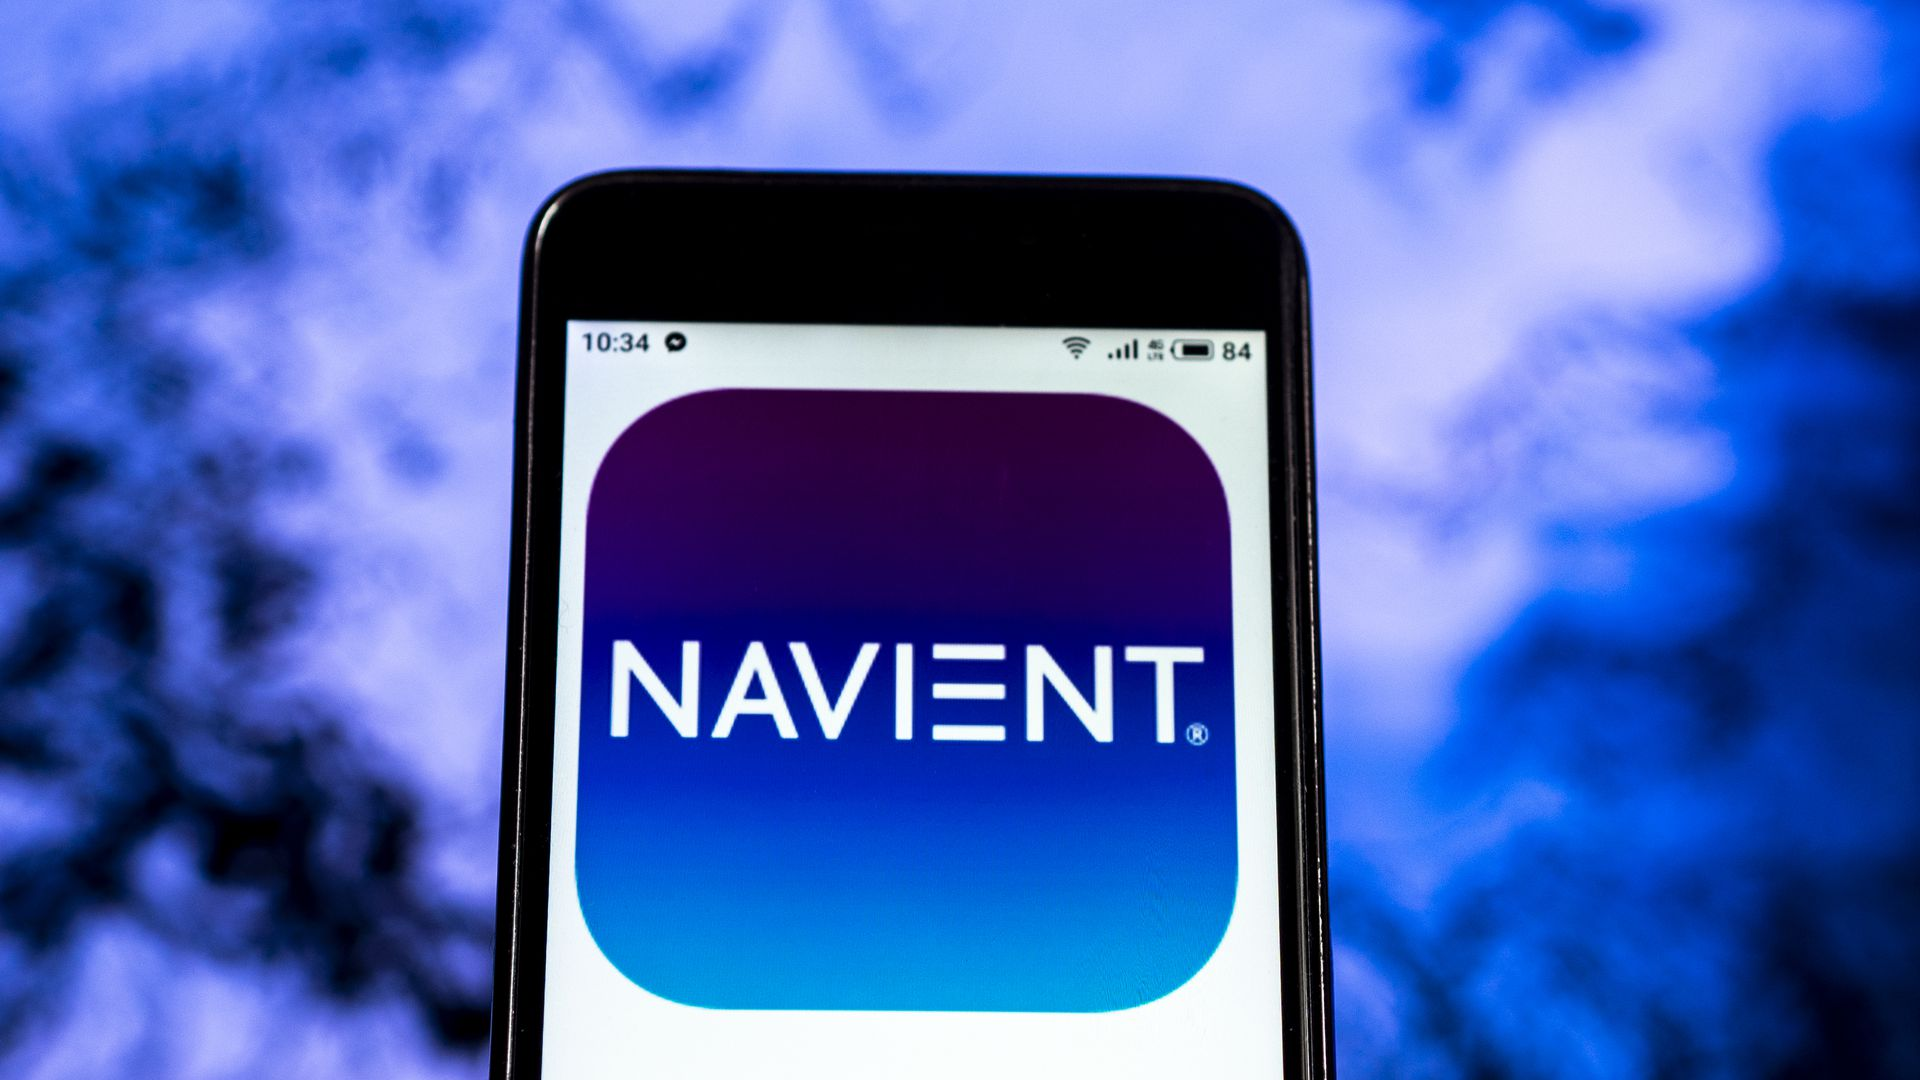 In this image, the Navient logo is displayed on a photo.